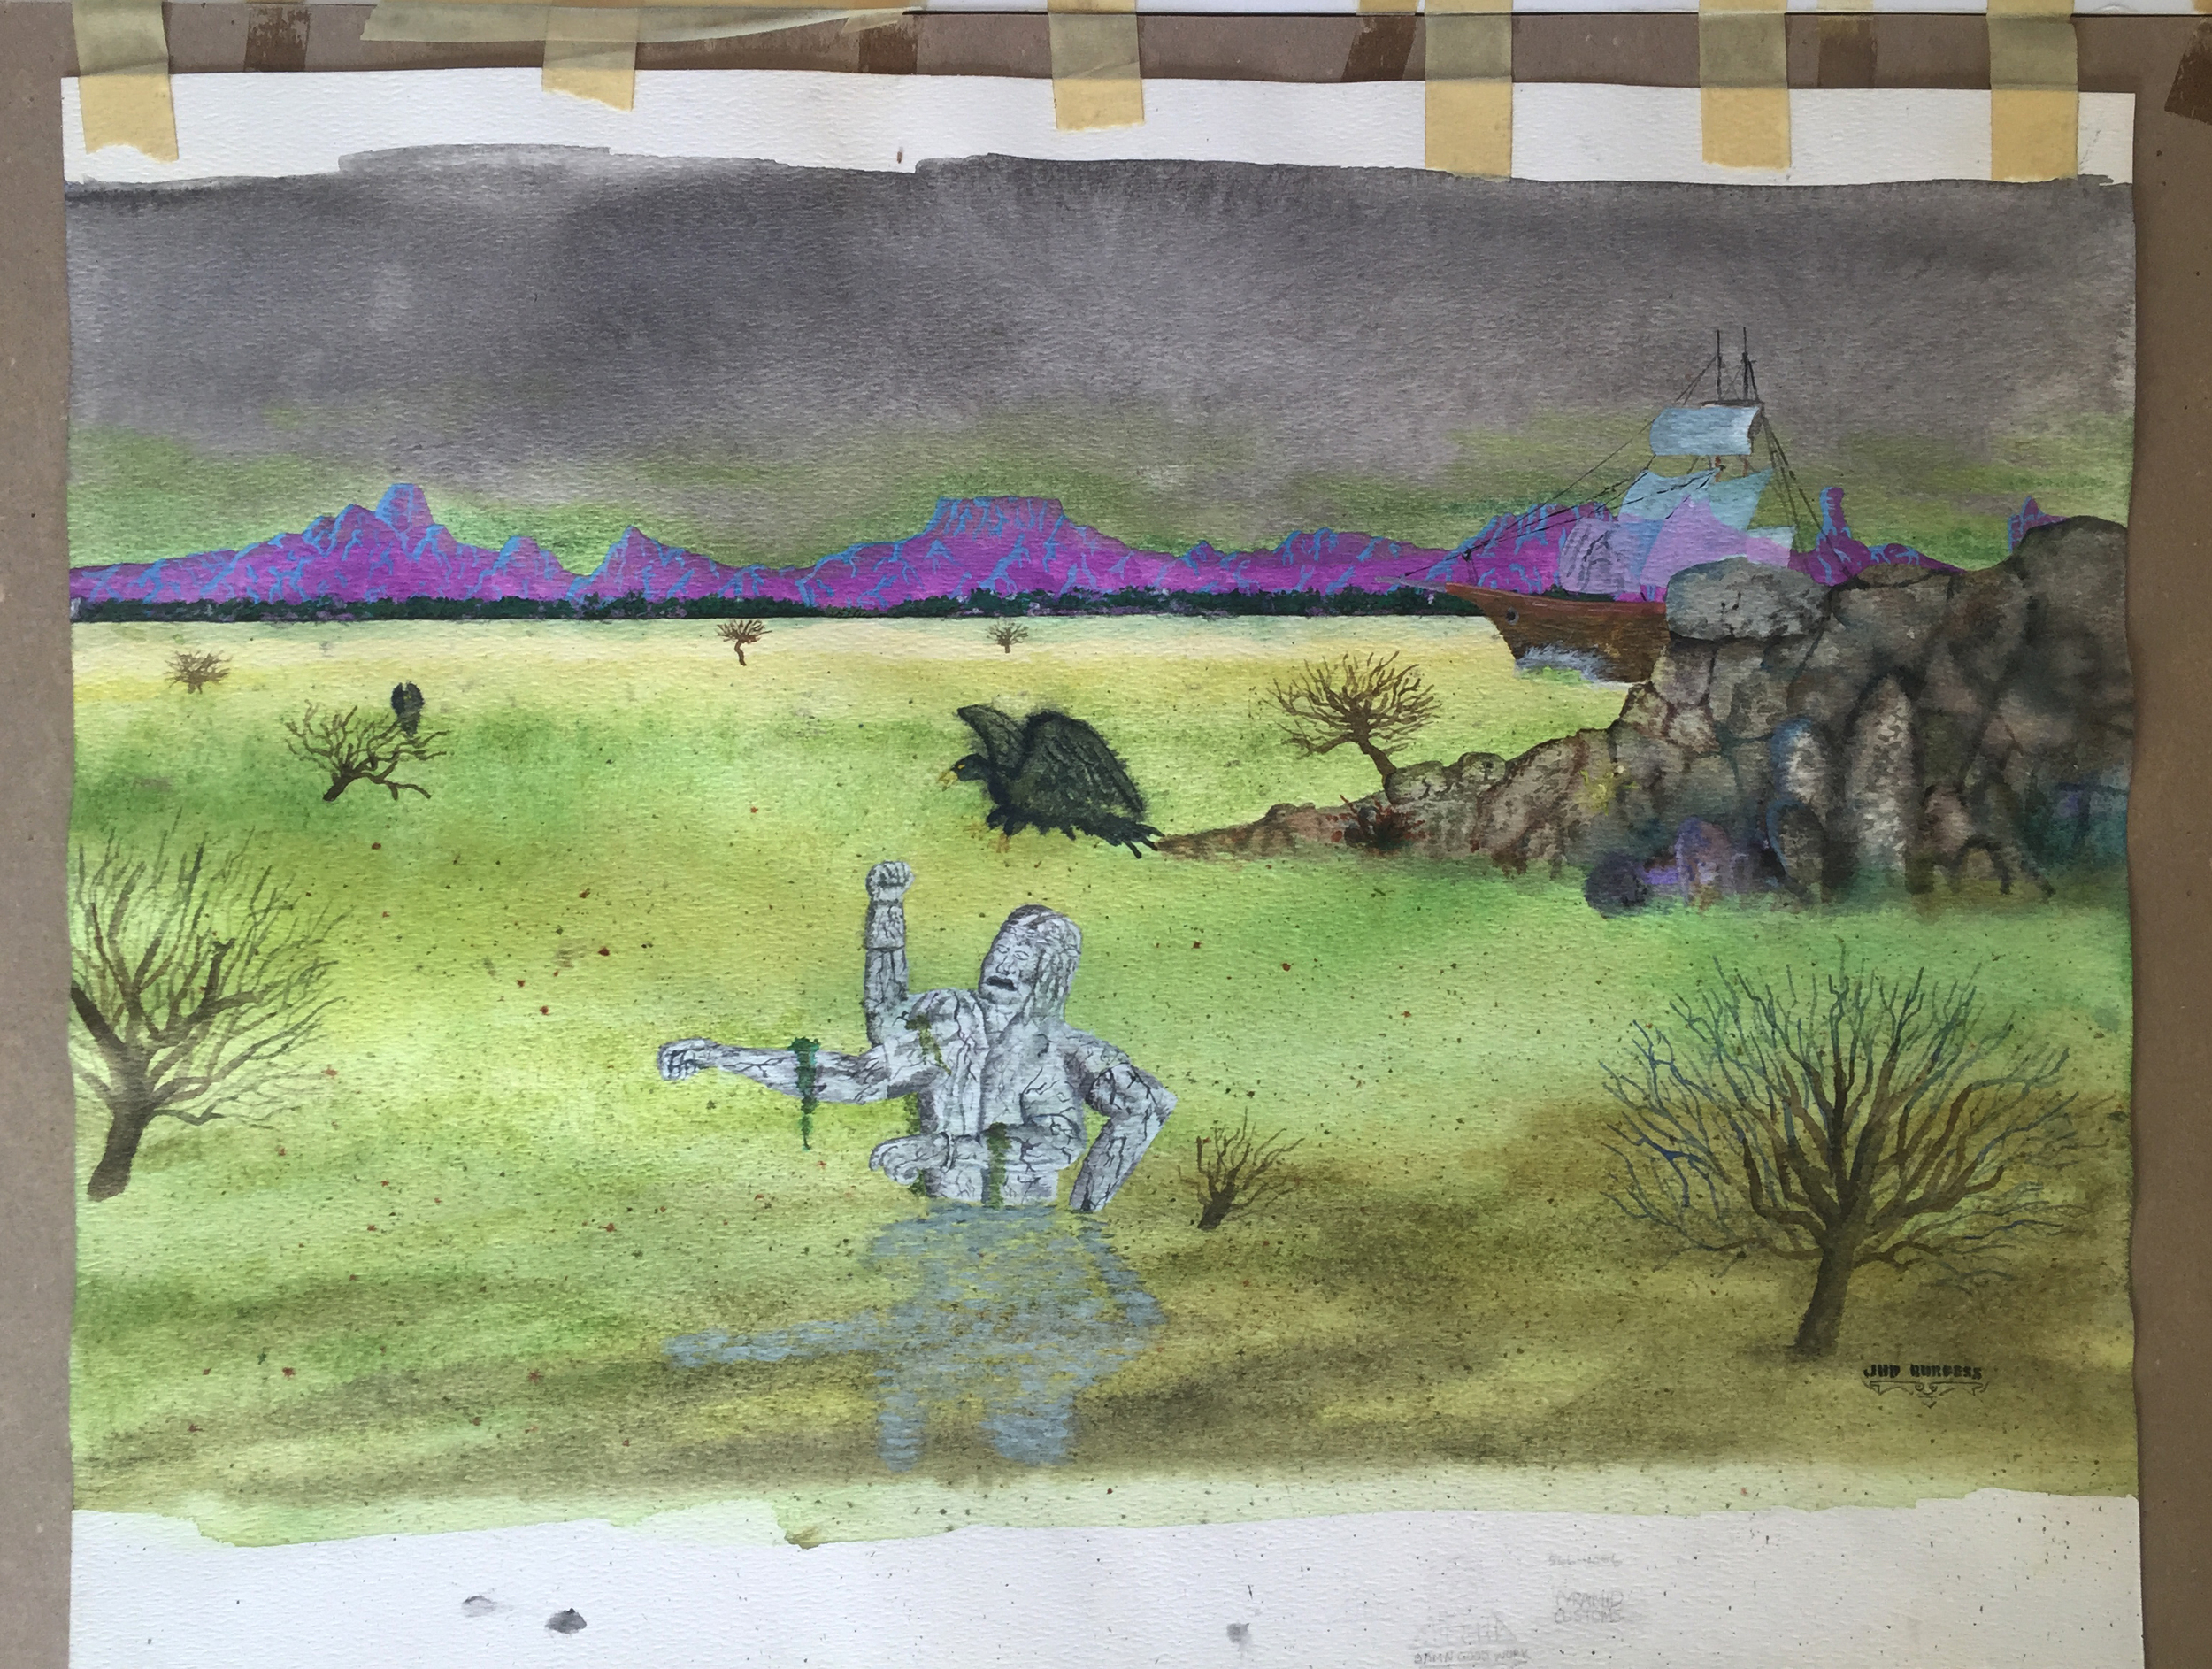 Statue in Bog   Watercolor on paper.  © Jud Burgess  1978